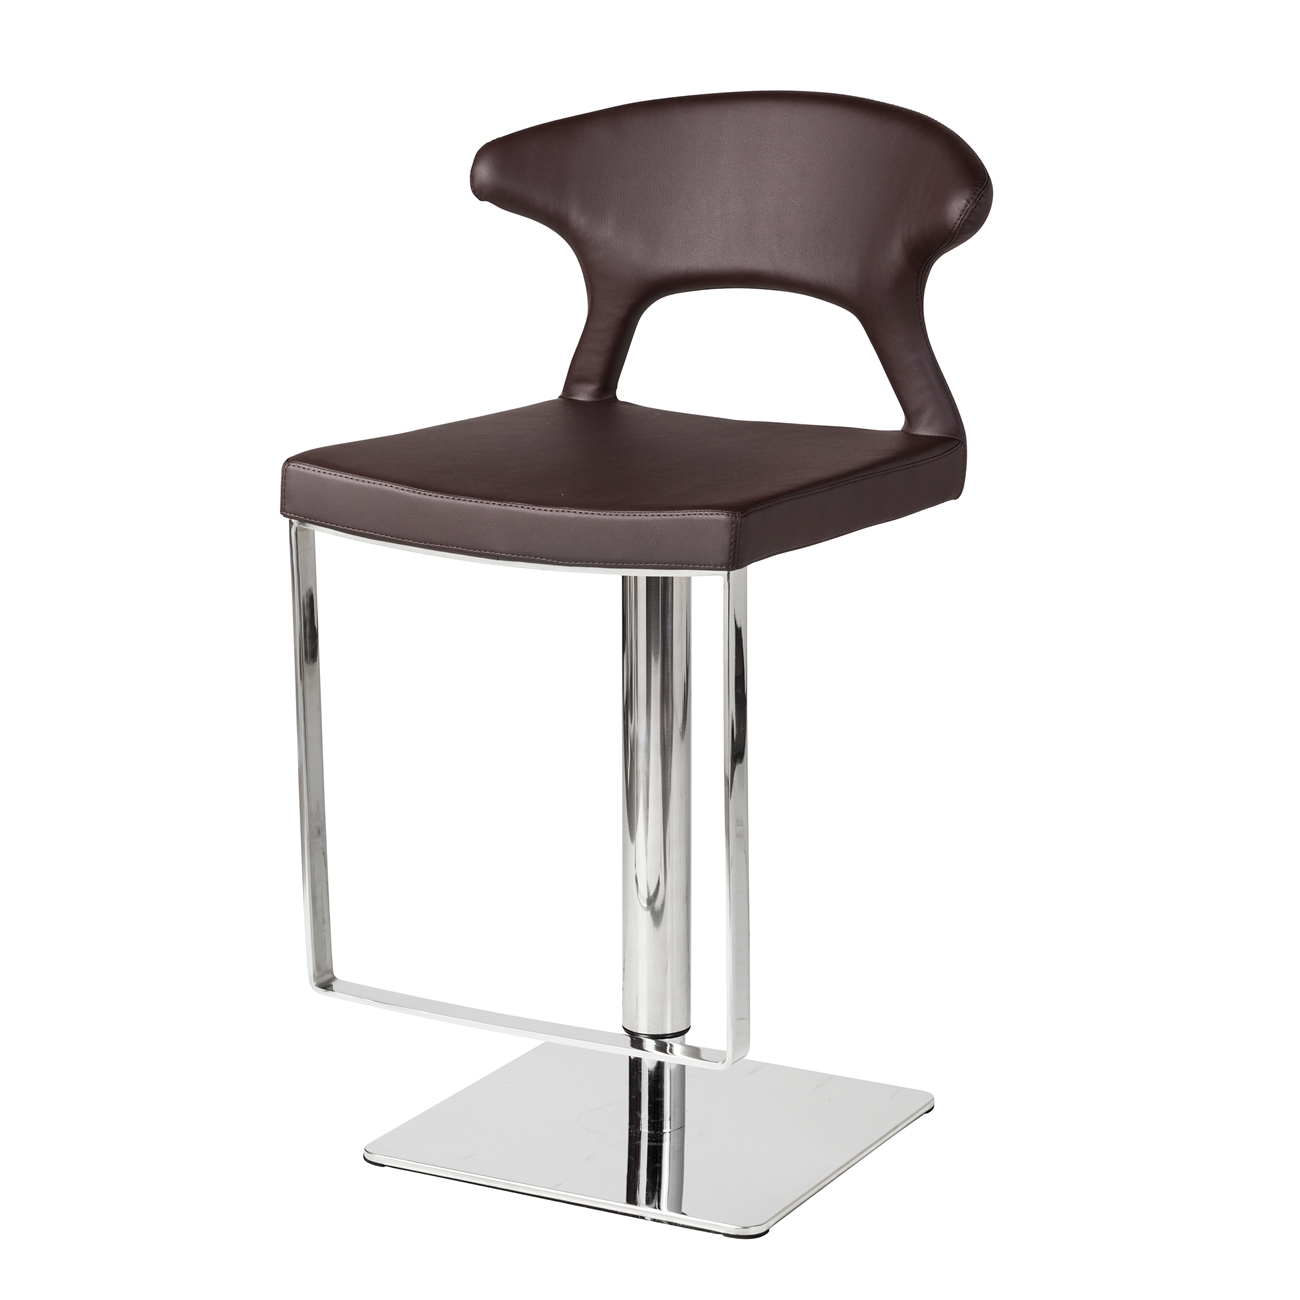 Stupendous Hydraulic Adjustable Counter Stool Brown Leather Machost Co Dining Chair Design Ideas Machostcouk